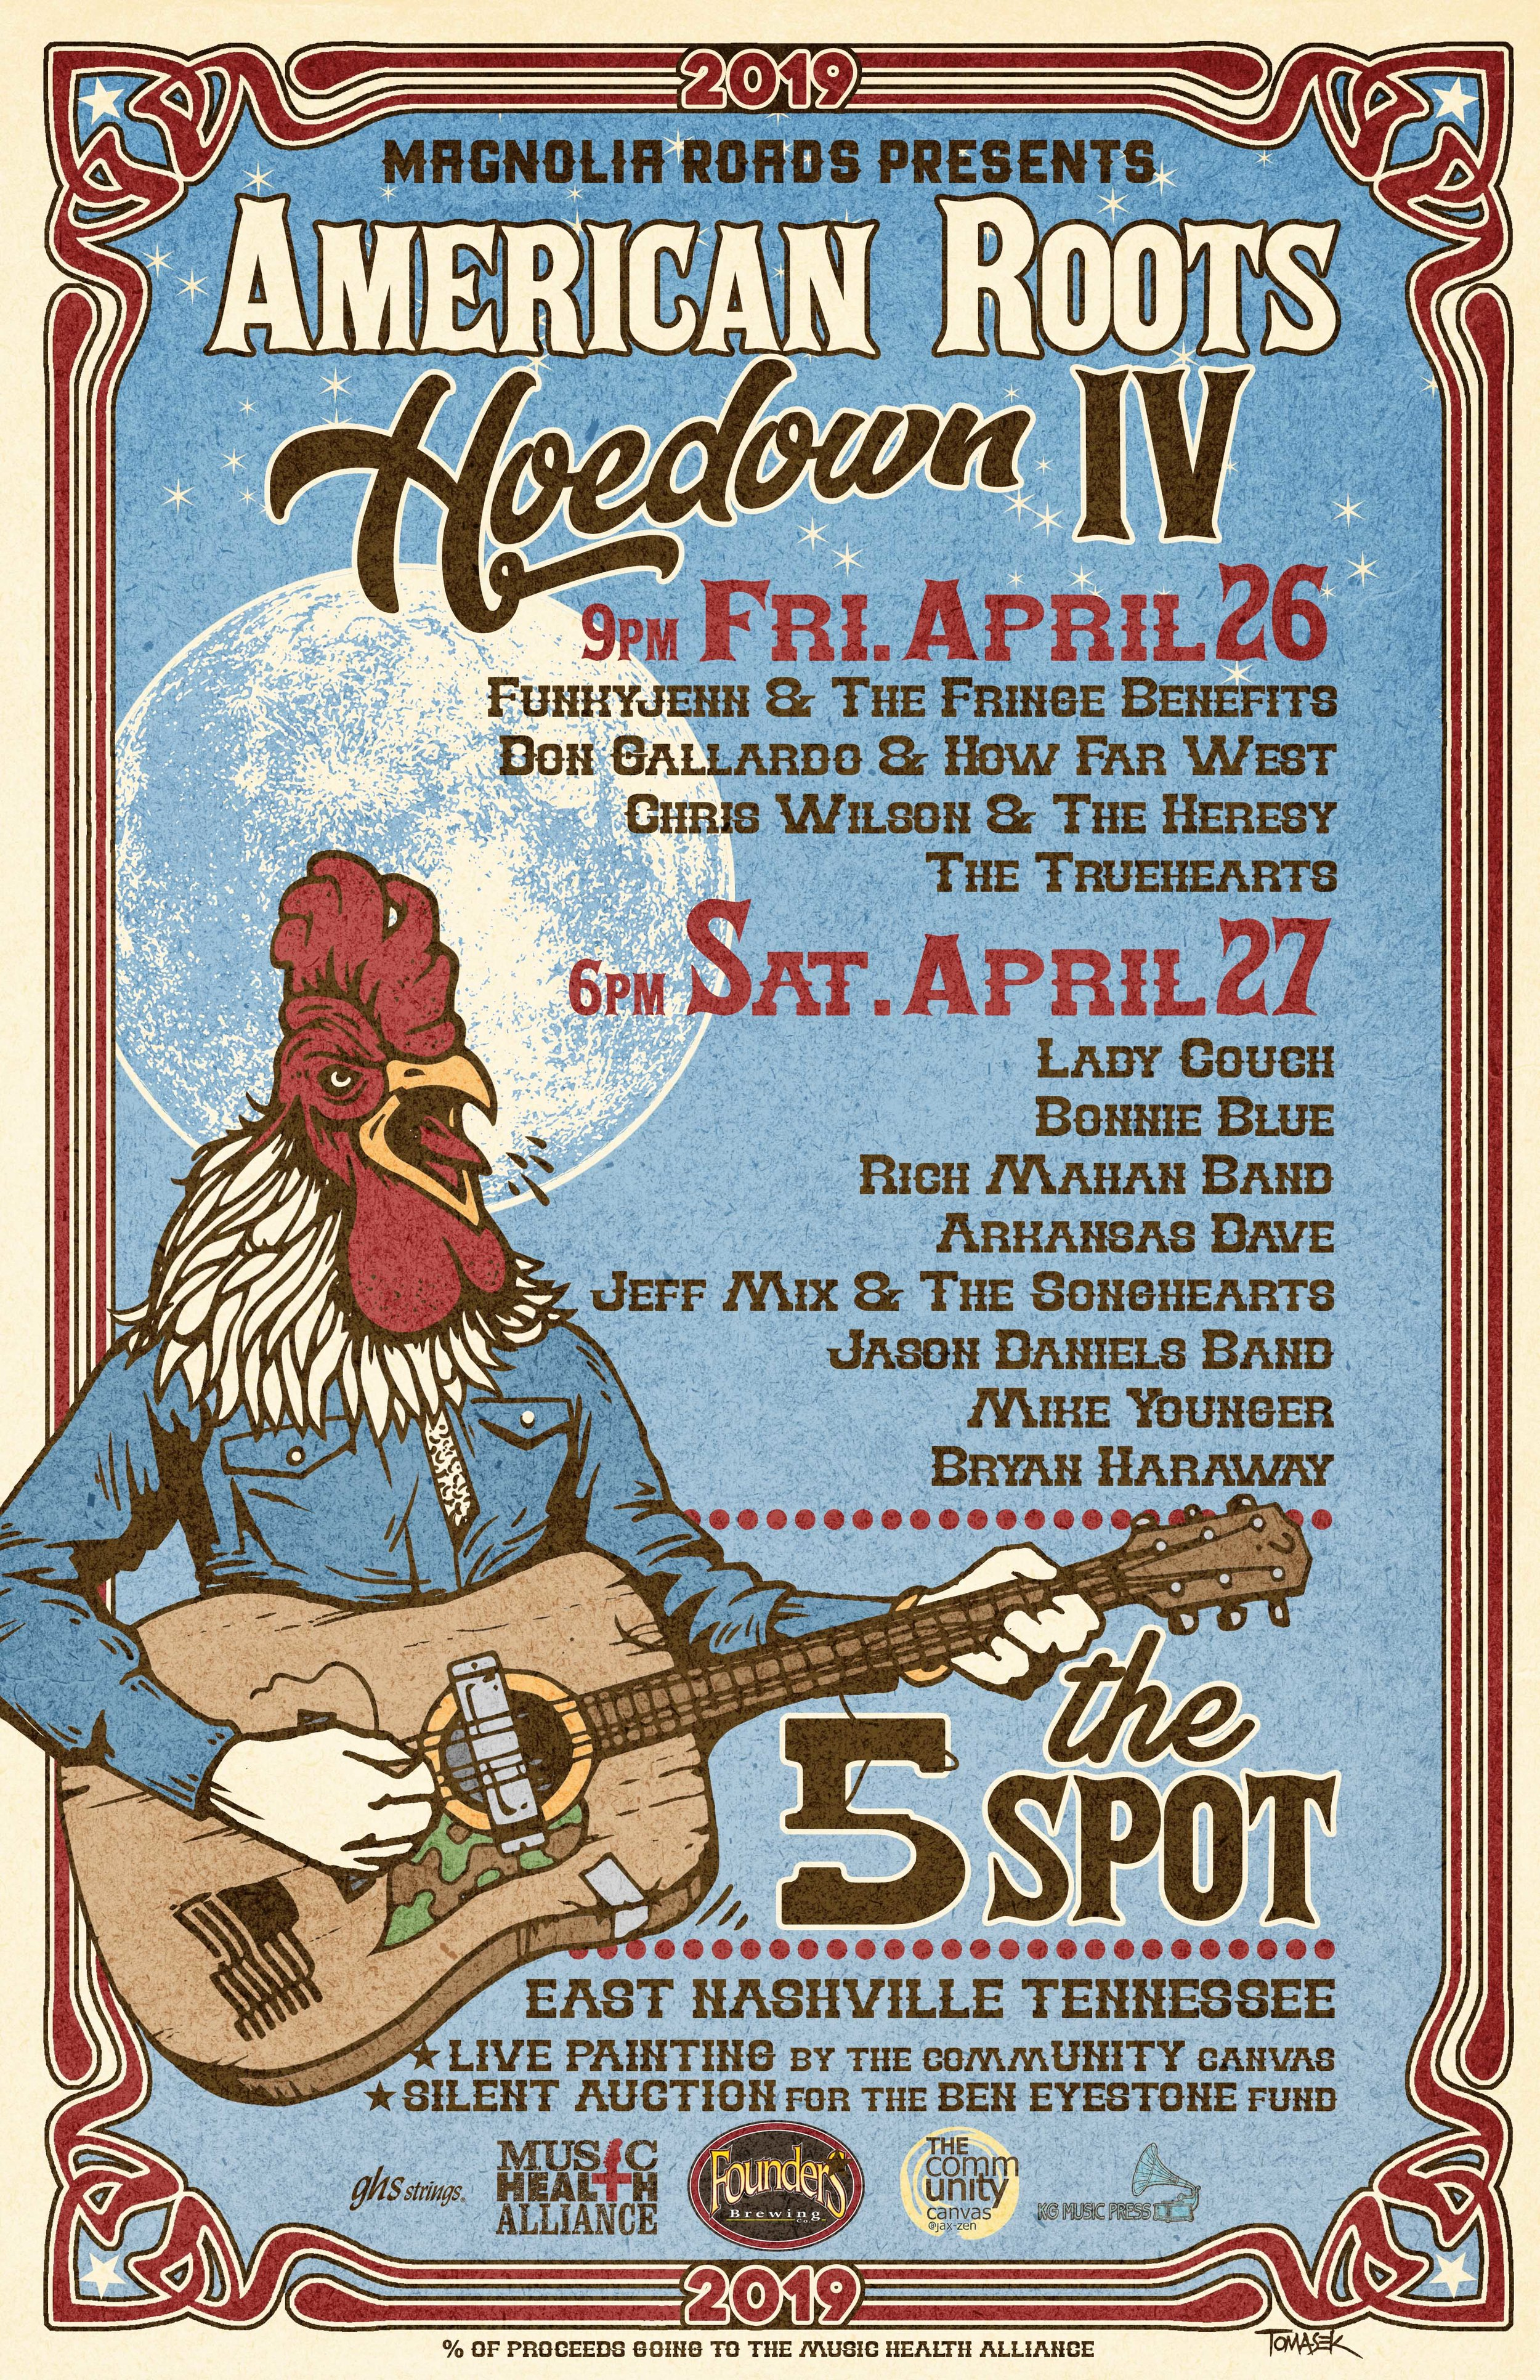 Magnolia Roads American Roots Hoedown IV-Poster.jpg